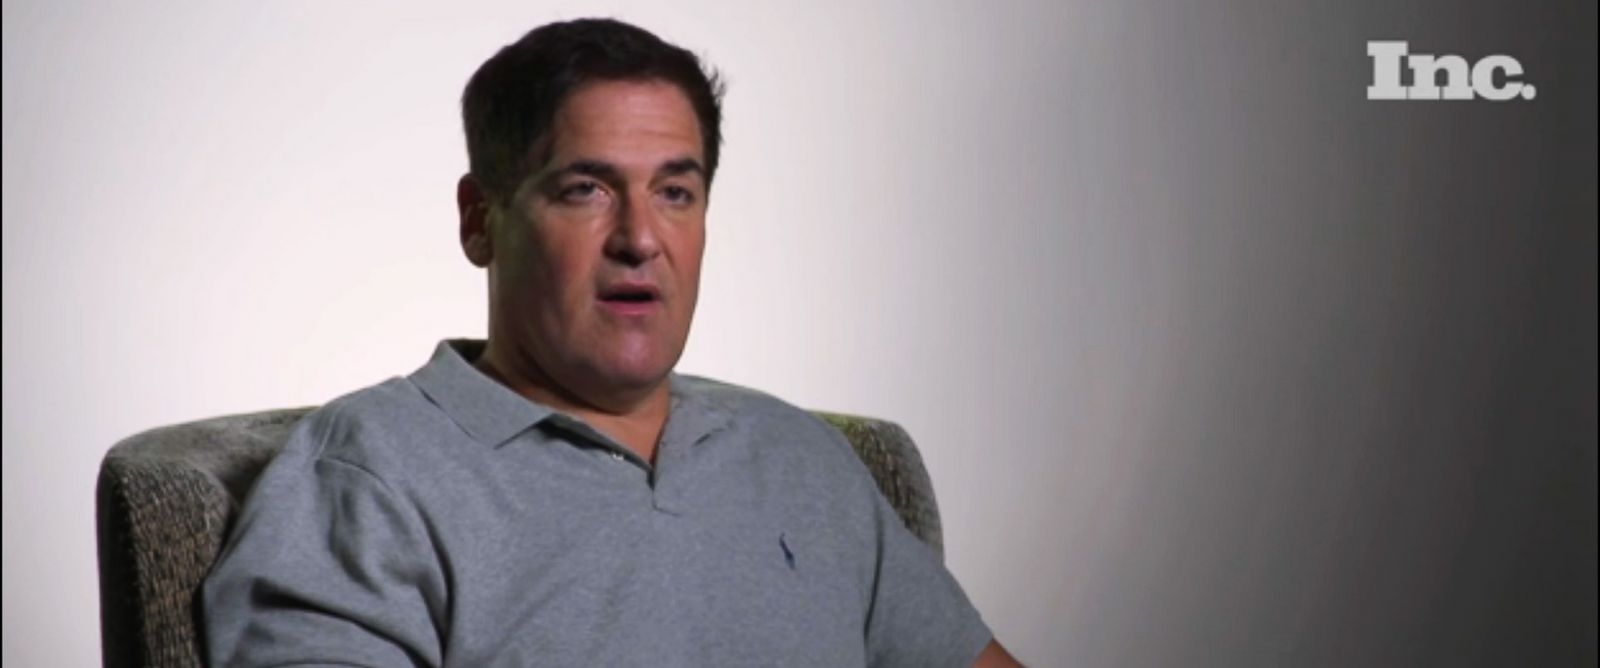 PHOTO: Dallas Mavericks owner Mark Cuban is seen in this video grab during an interview at Inc.s GrowCo Conference in Nashville, Tenn. on May 21, 2014.